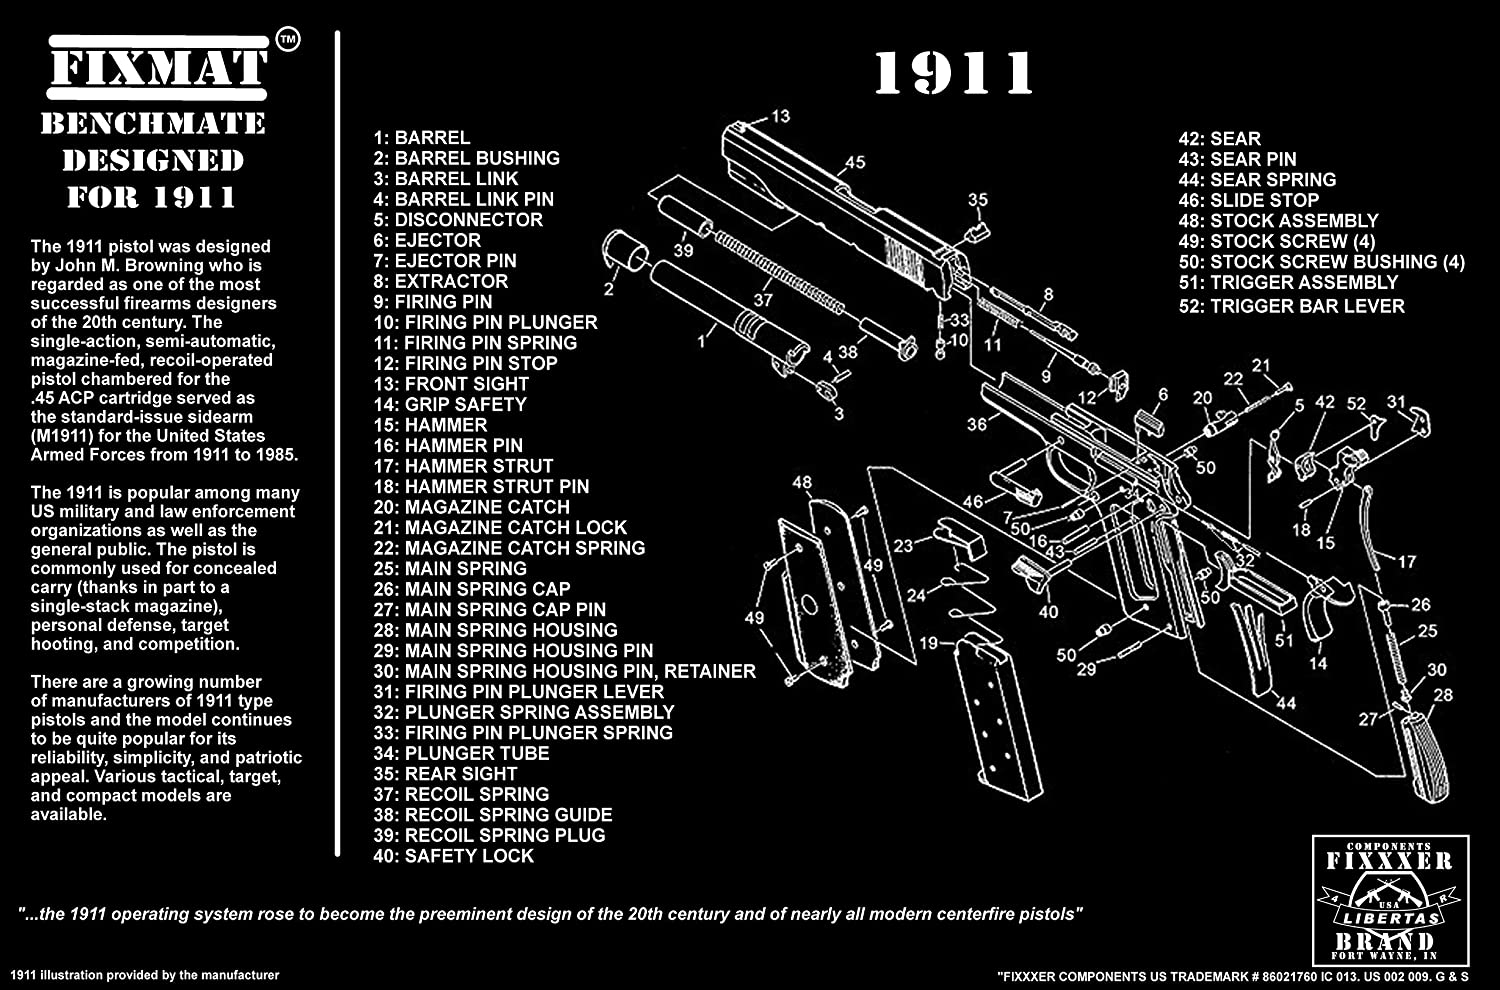 1911 Diagram Fixmat Benchmate 11 X 17 Handgun Cleaning Exploded Mat Featuring Black Sports Outdoors